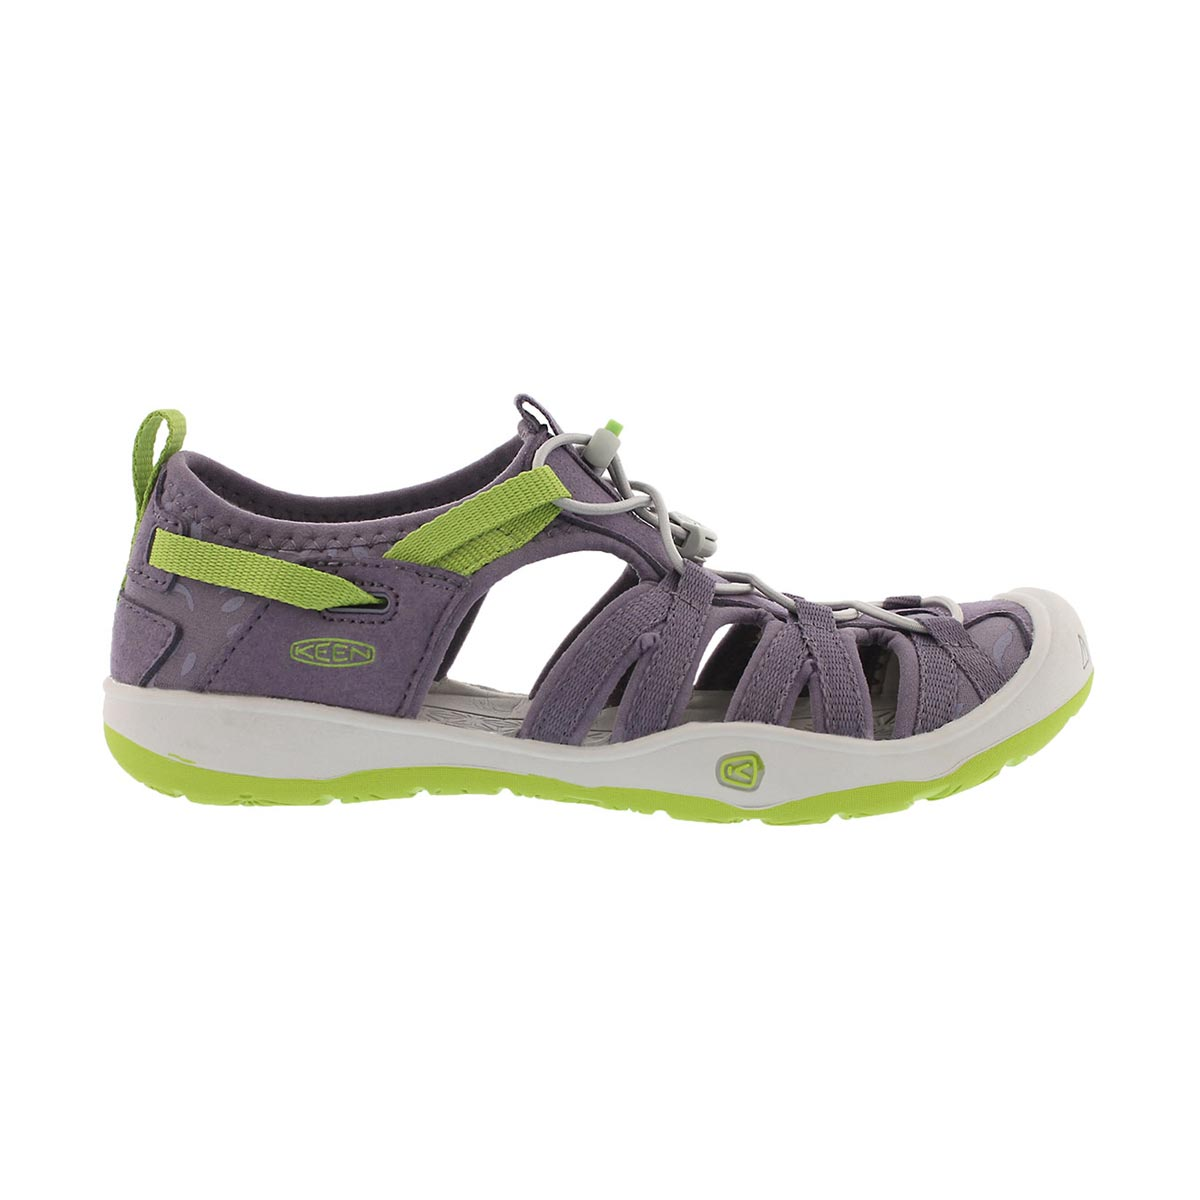 Grls Moxie purple/green fisherman sandal